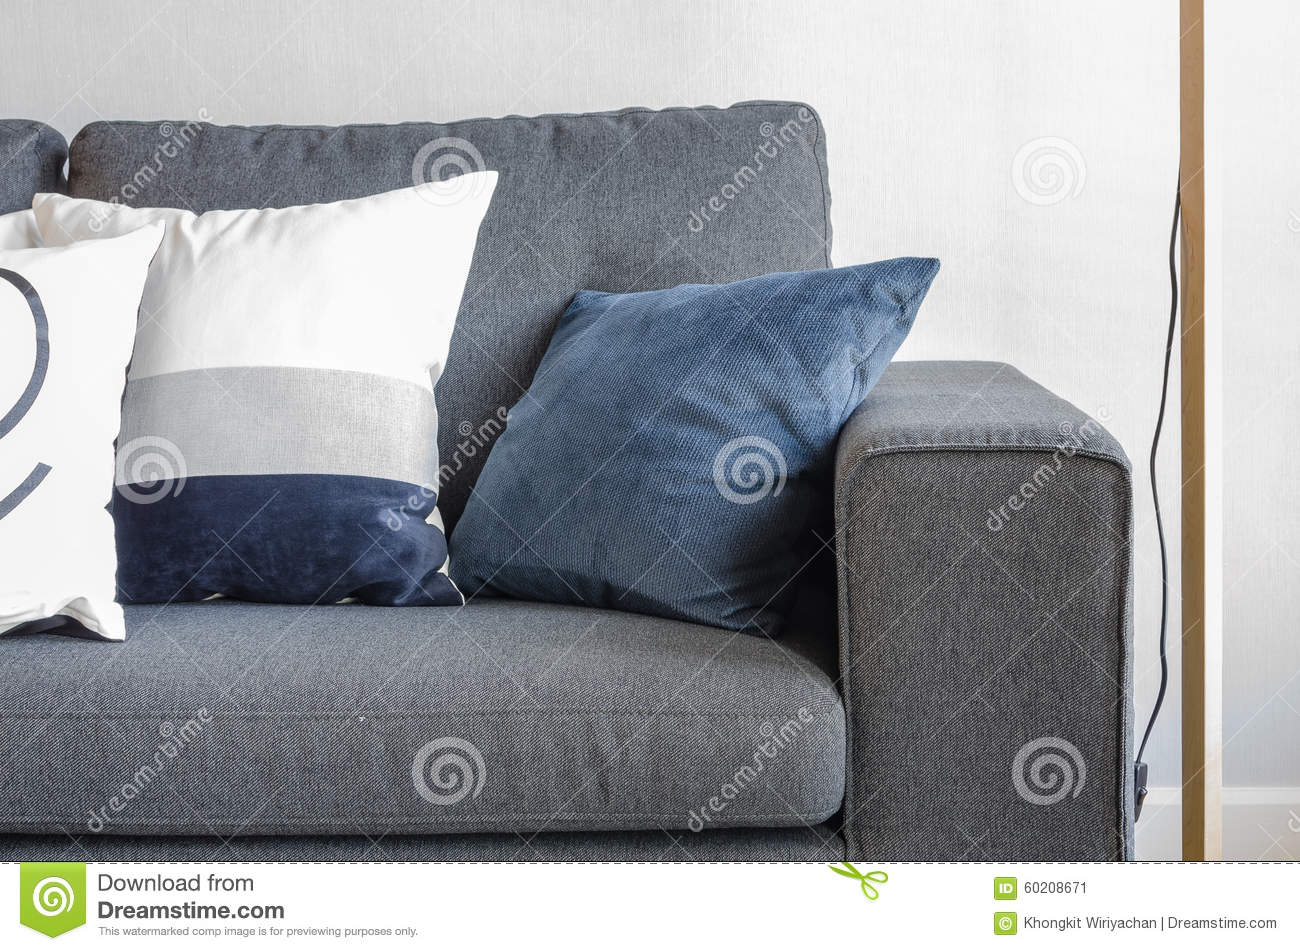 Blue Pillows On Modern Grey Sofa Stock Image - Image of living ...